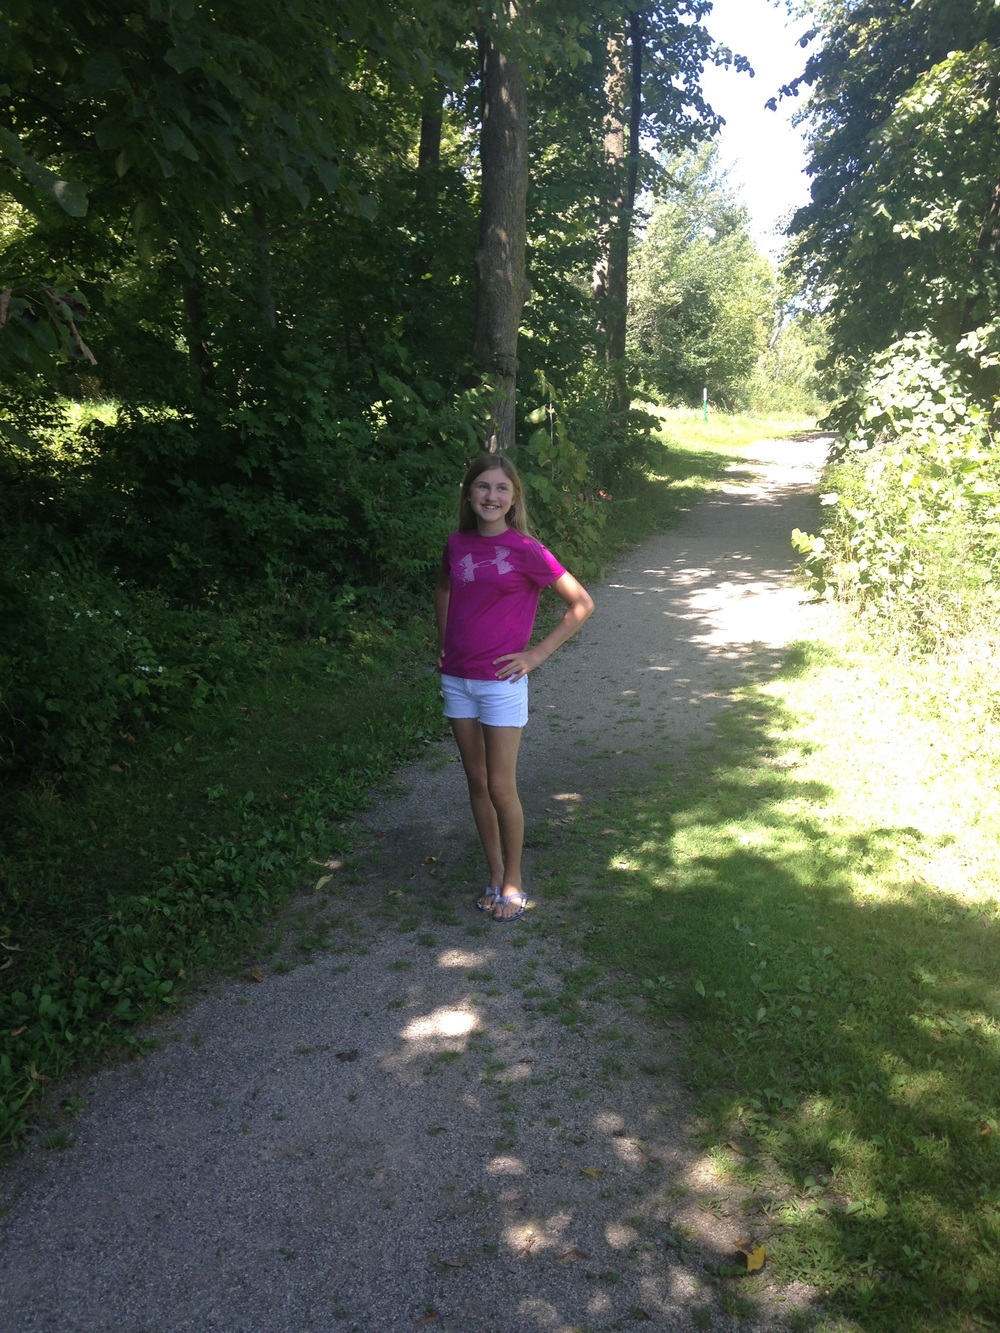 Ashlee-On-Trail-Under-Sunshine.jpg